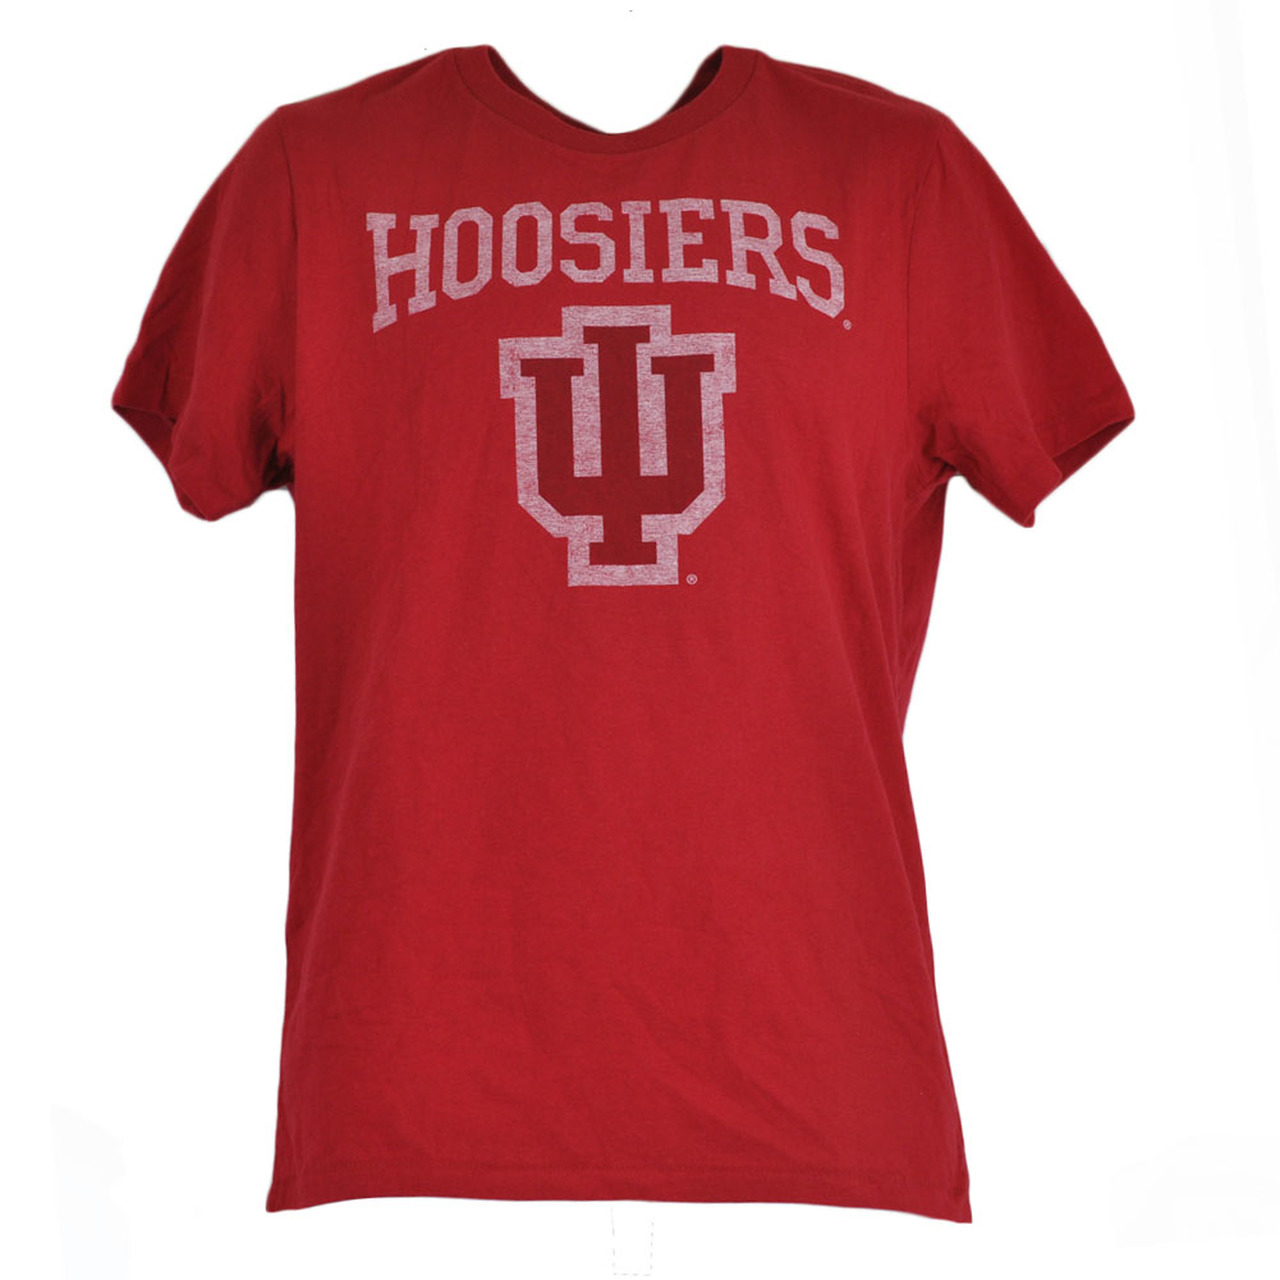 NCAA Indiana Hoosiers Distressed Red Basic Logo College Shirt Tshirt Tee.